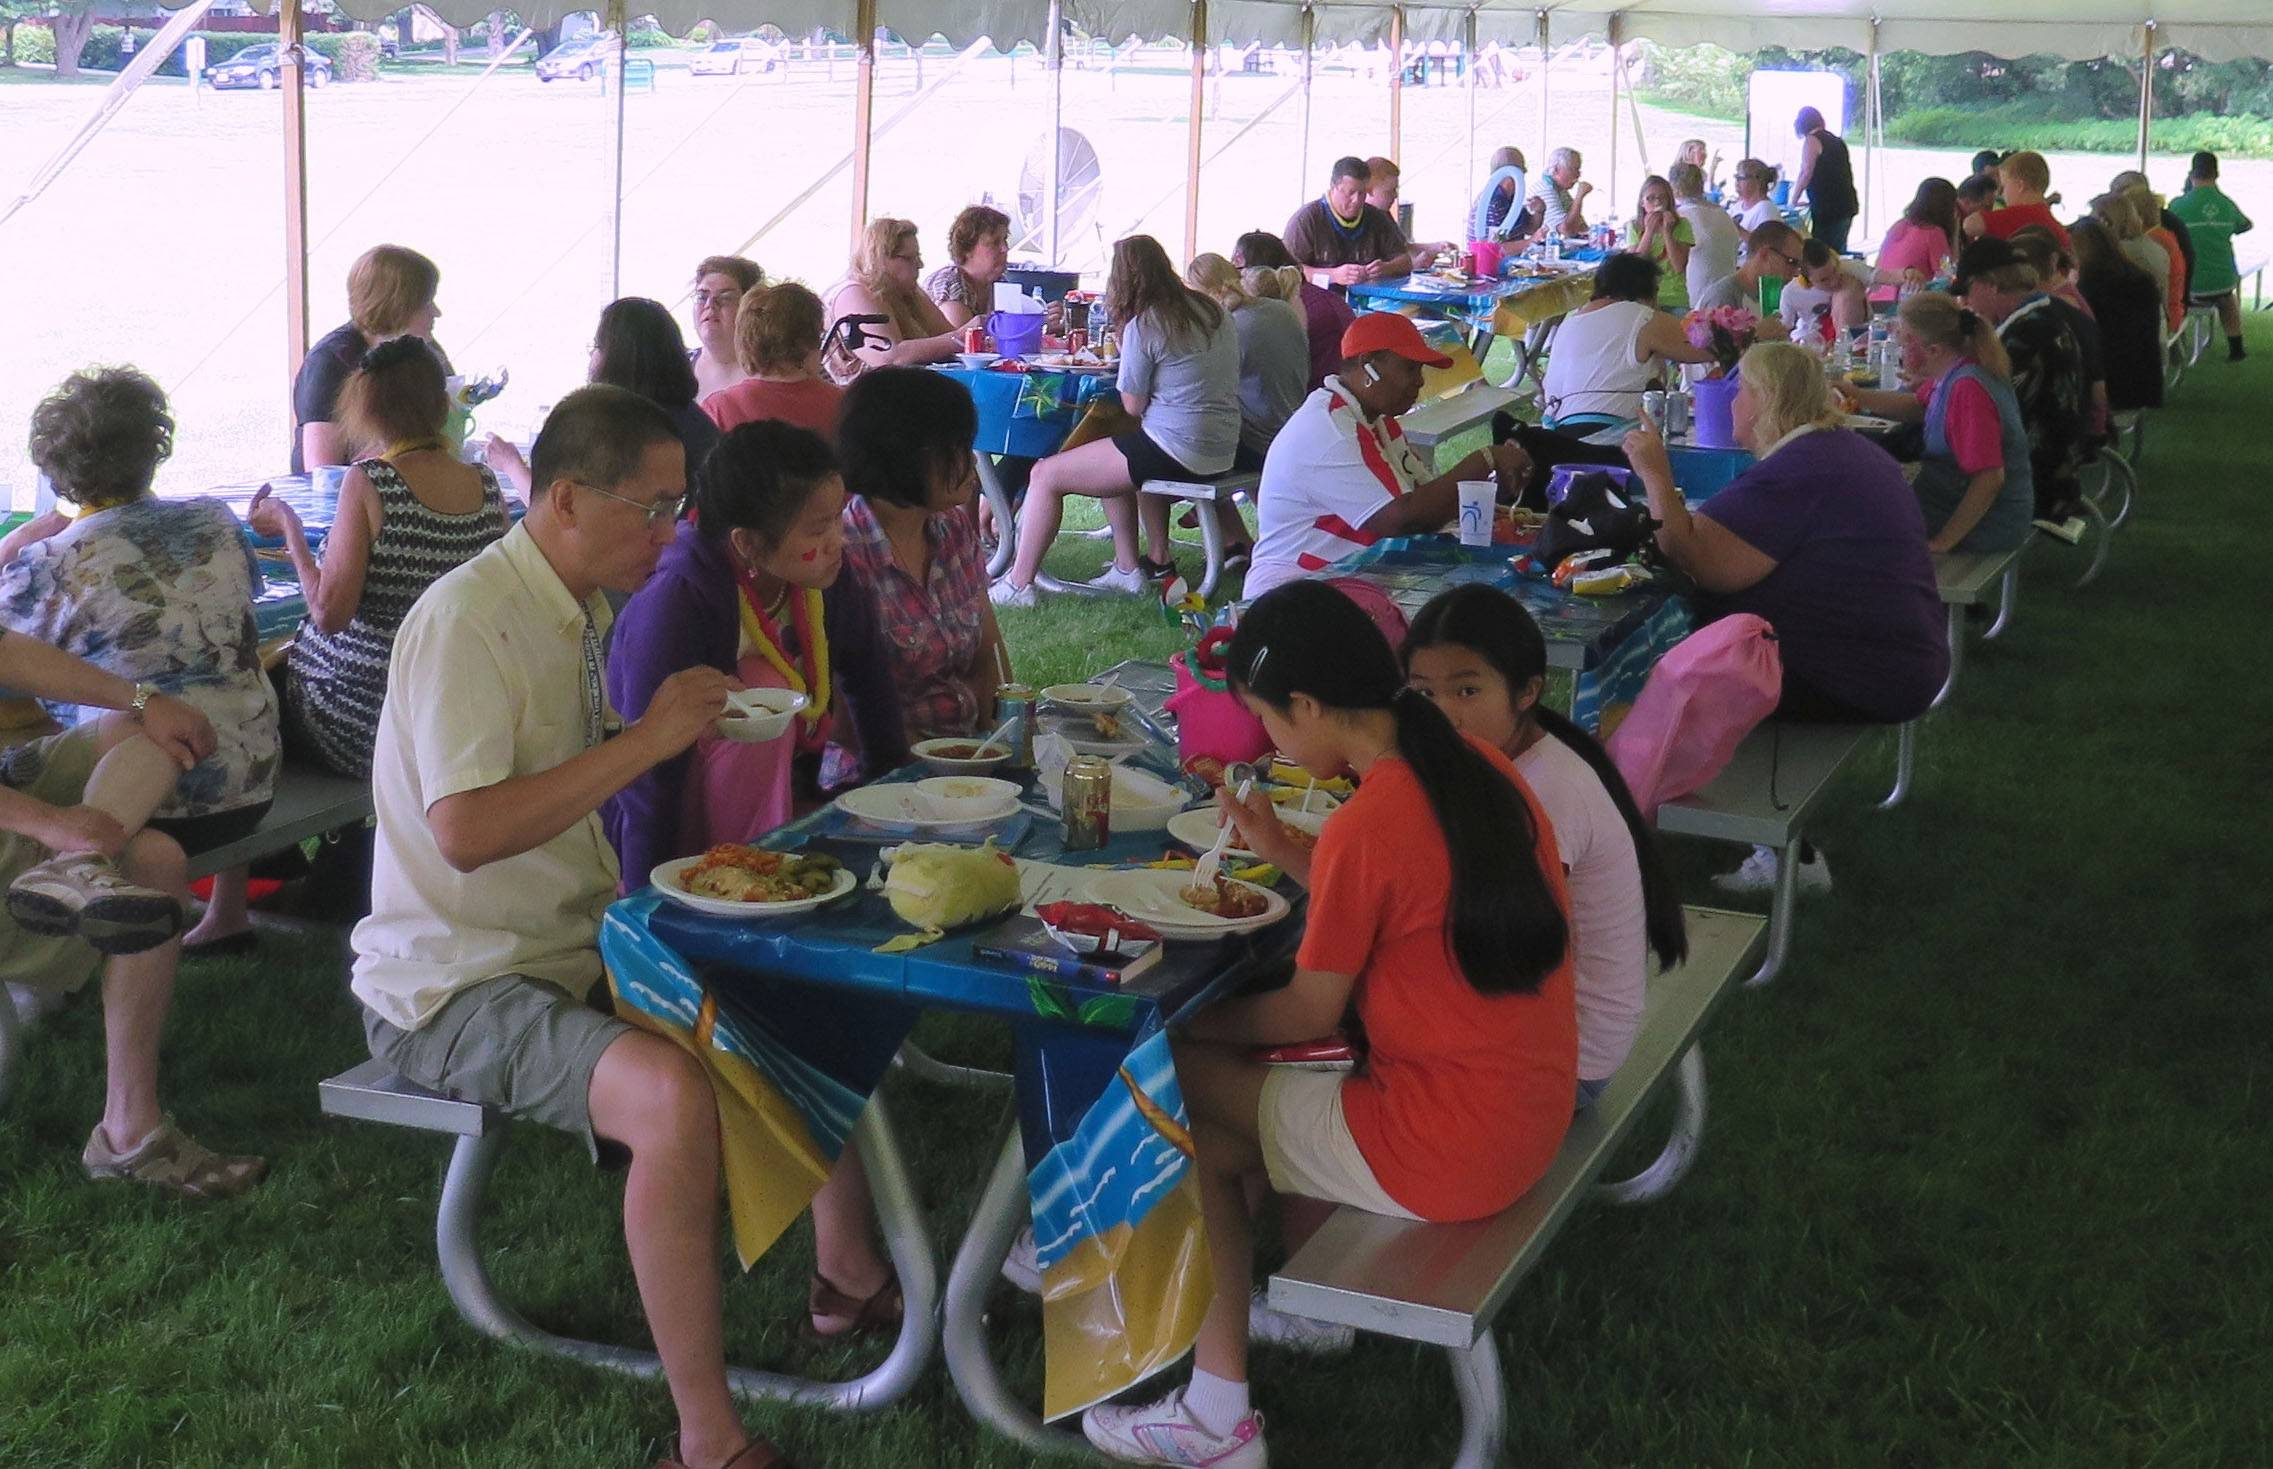 Guests at the annual Schaumburg Township disability Services picnic lunch on Village Tavern's chicken fingers and hot dogs before the bingo games begin.